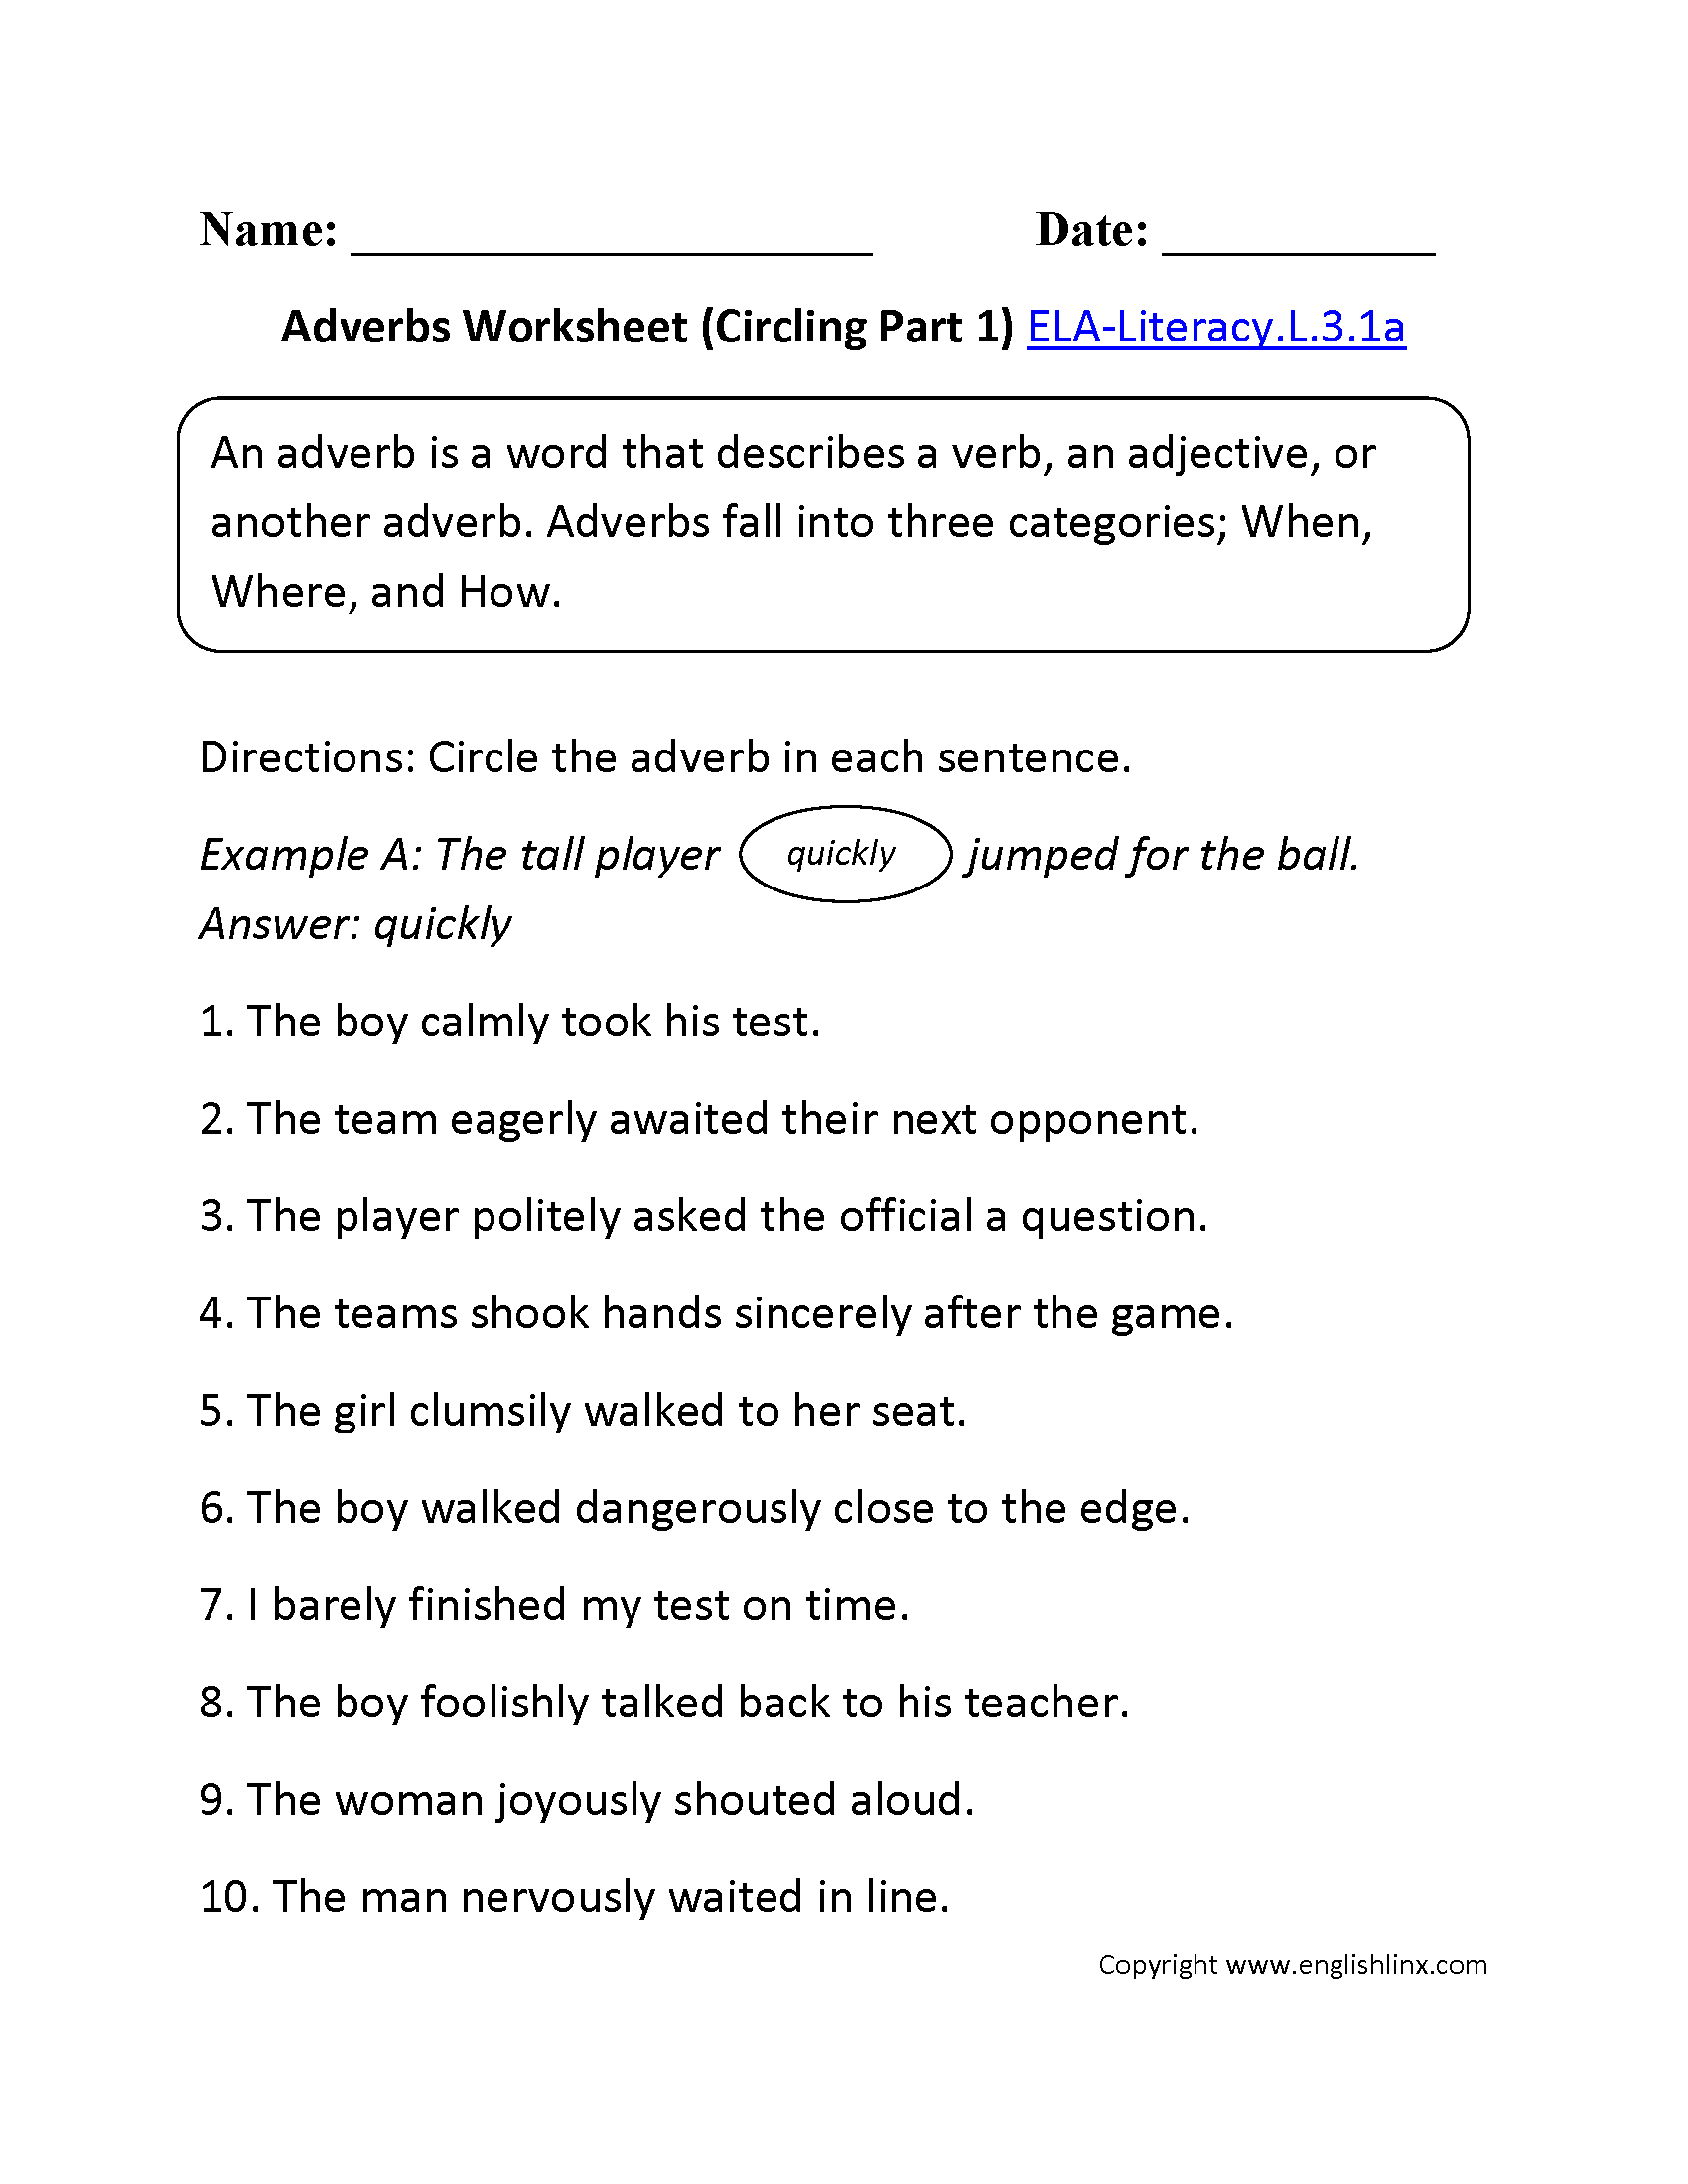 worksheet Adverbs Worksheet Year 2 adverbs worksheet 1 l 3 classroom worksheets pinterest 1